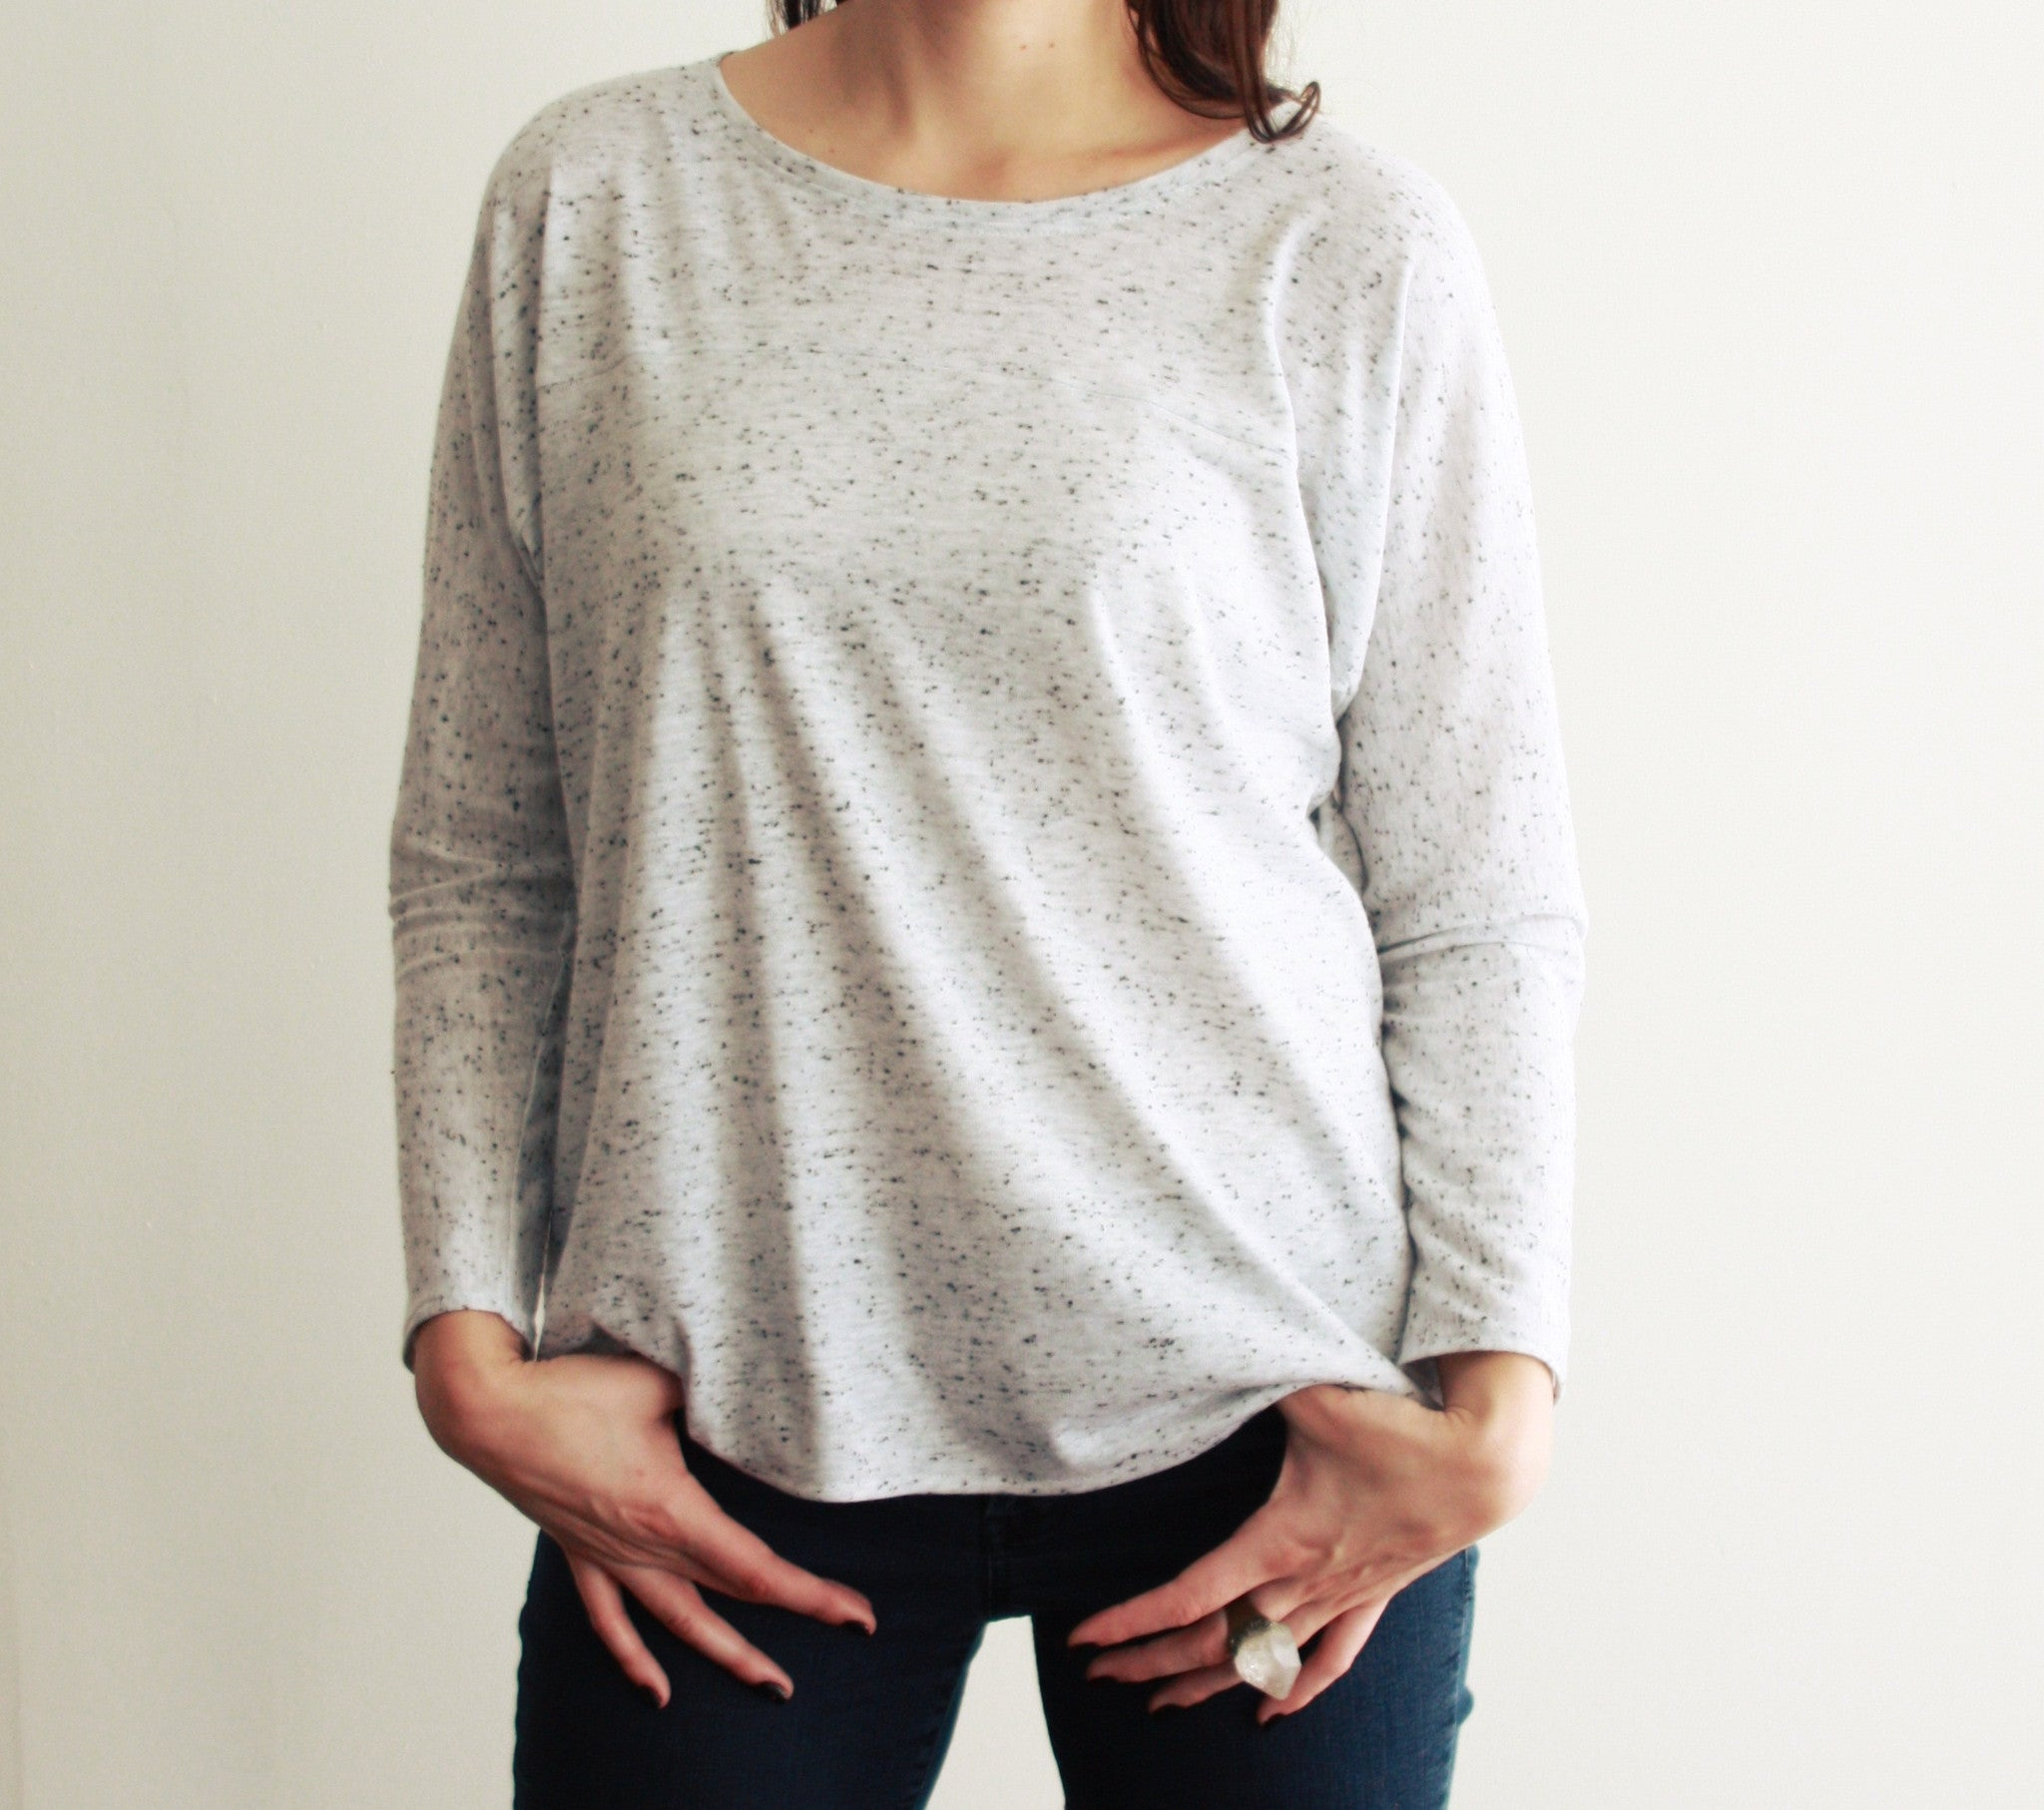 Speckle Knit Top